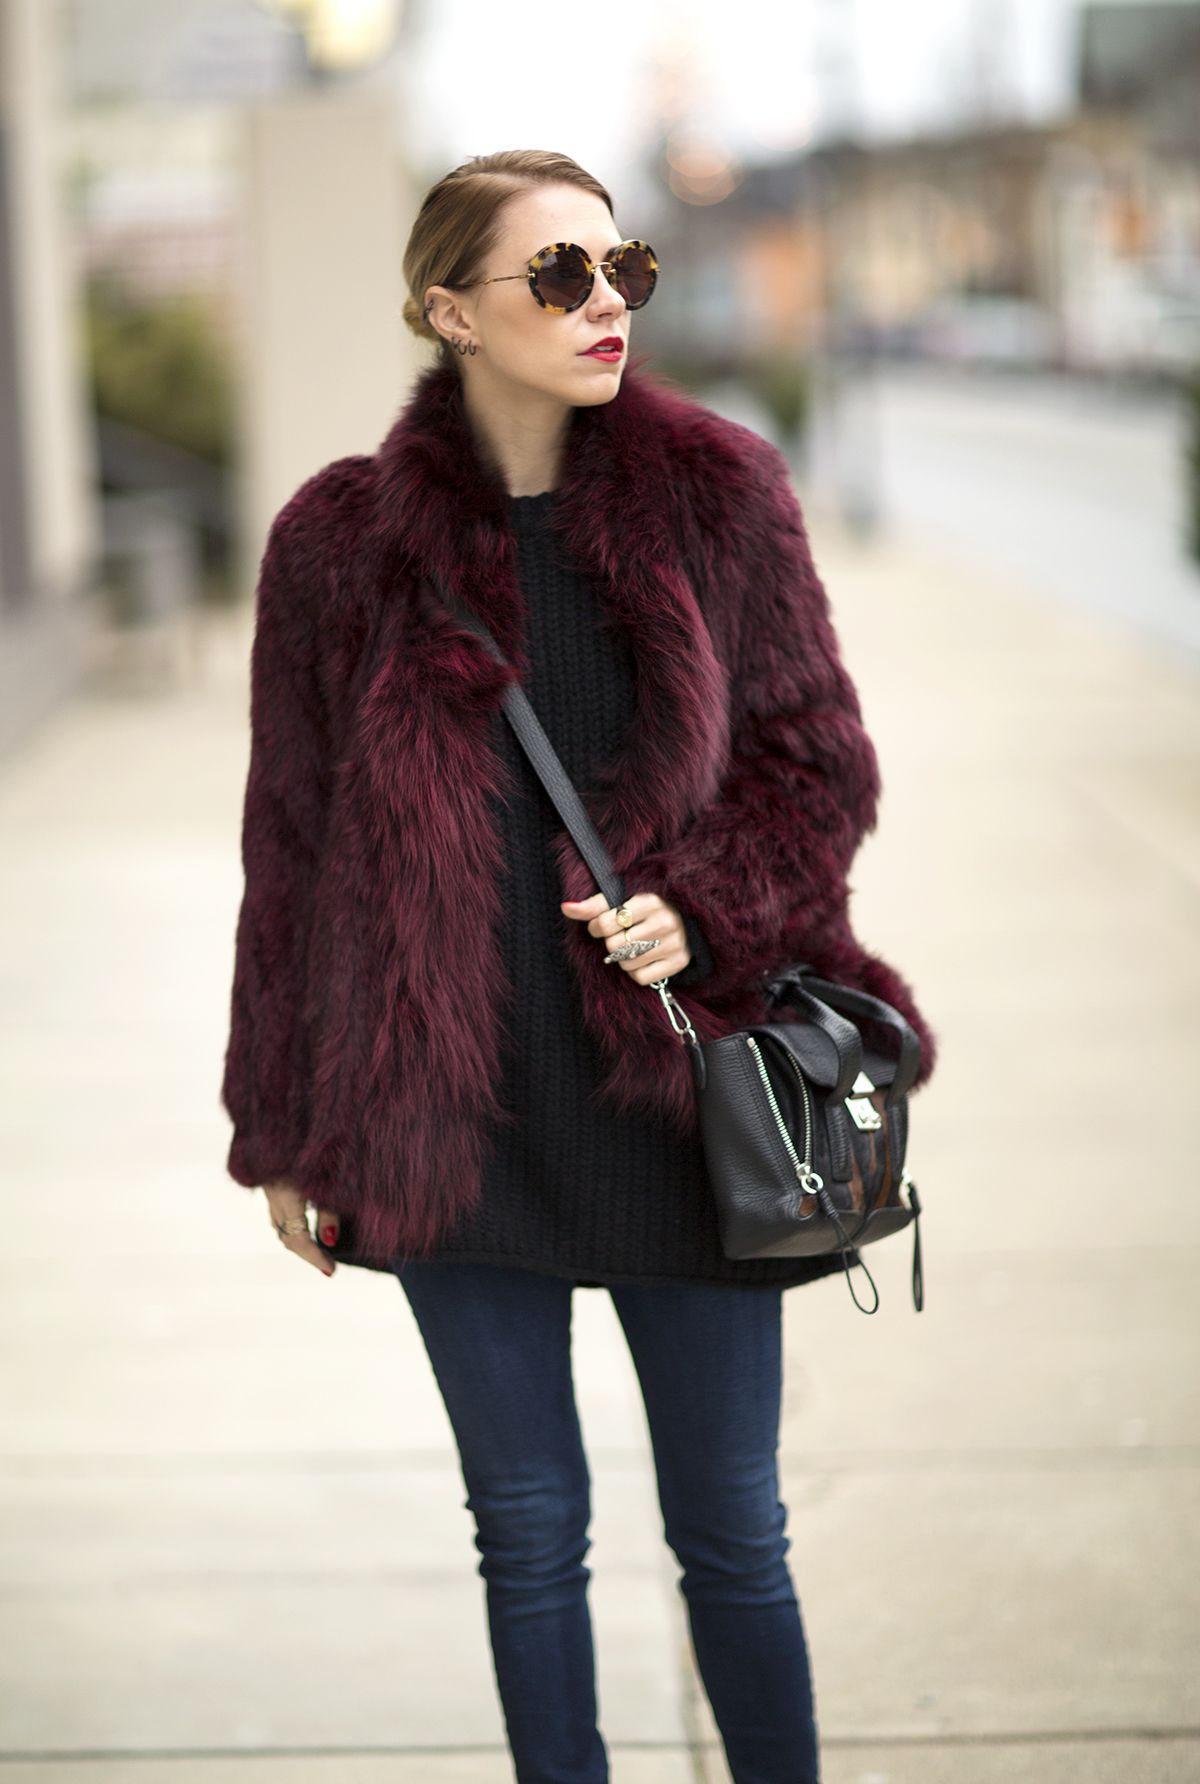 Chic and fun. Fake fur jacket with black basics. #casual wear ...